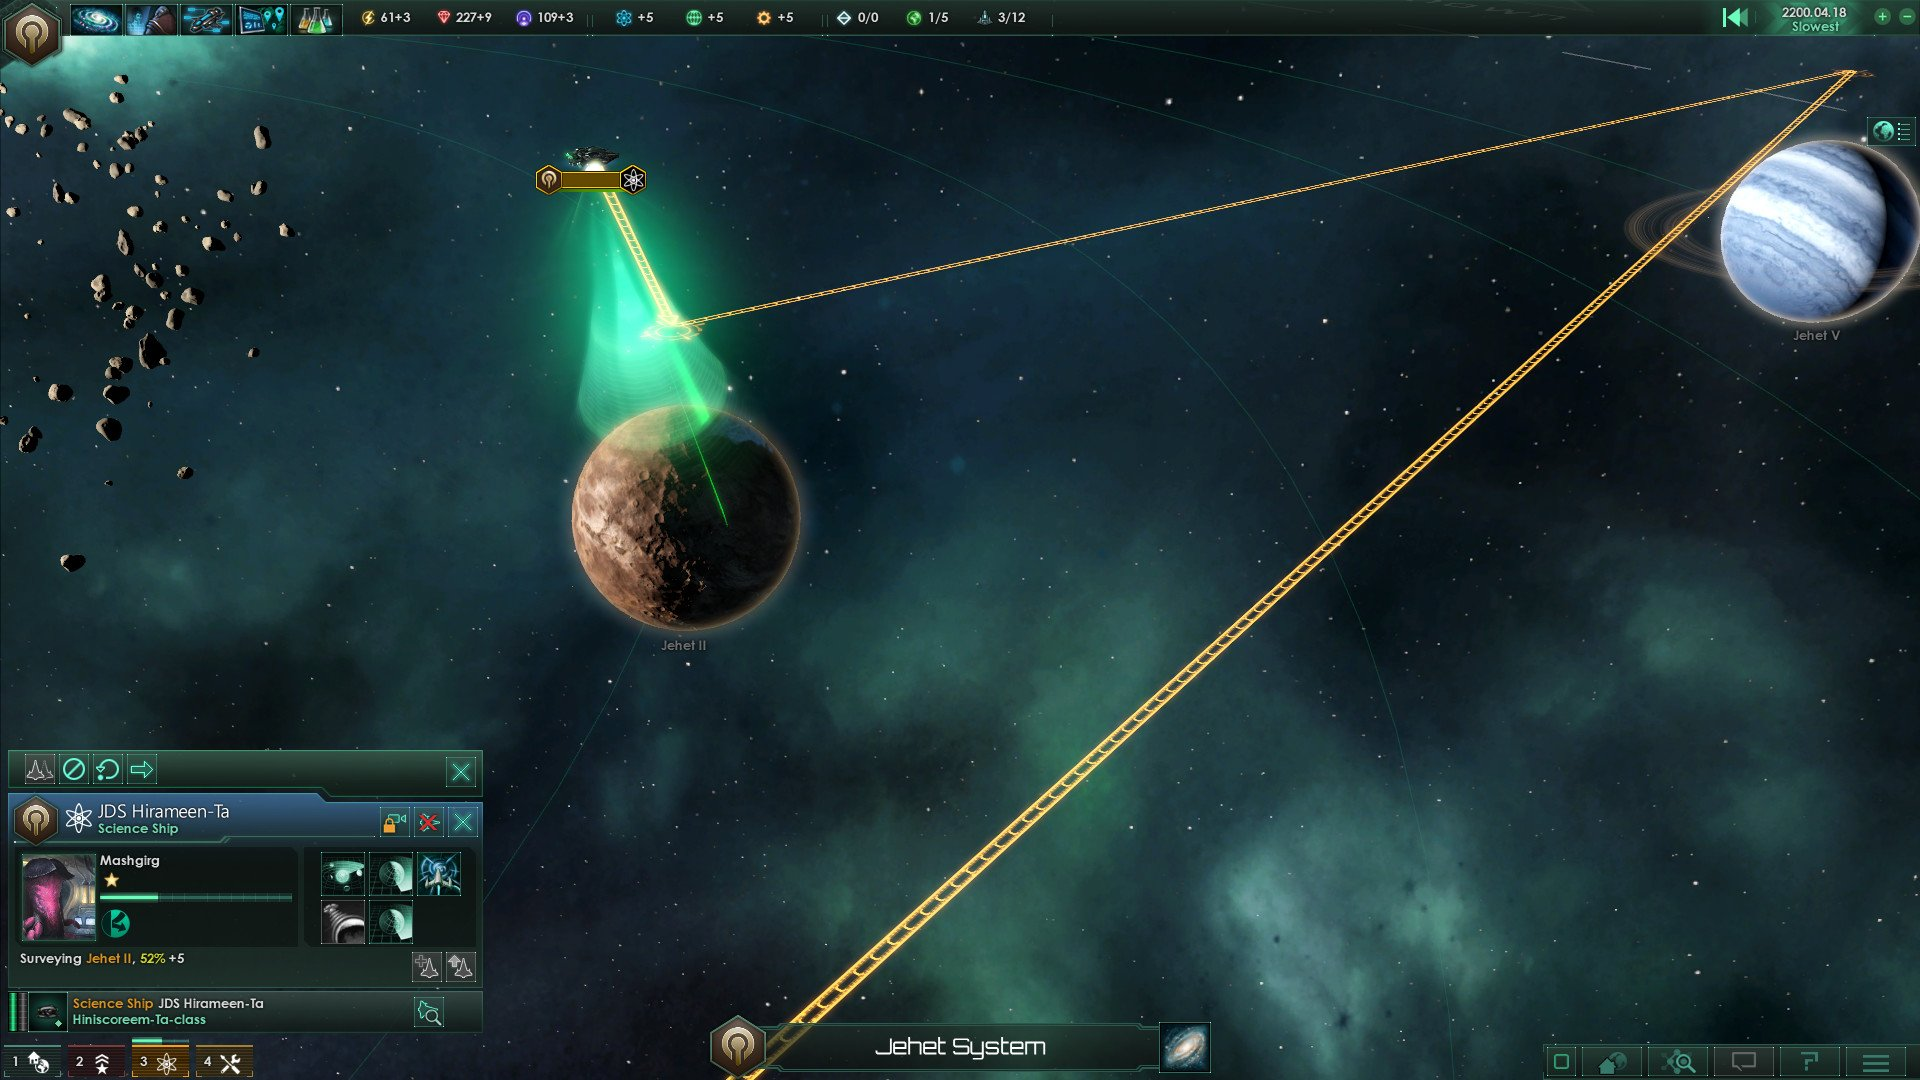 Stellaris: Console Edition is scheduled to release on February 26.